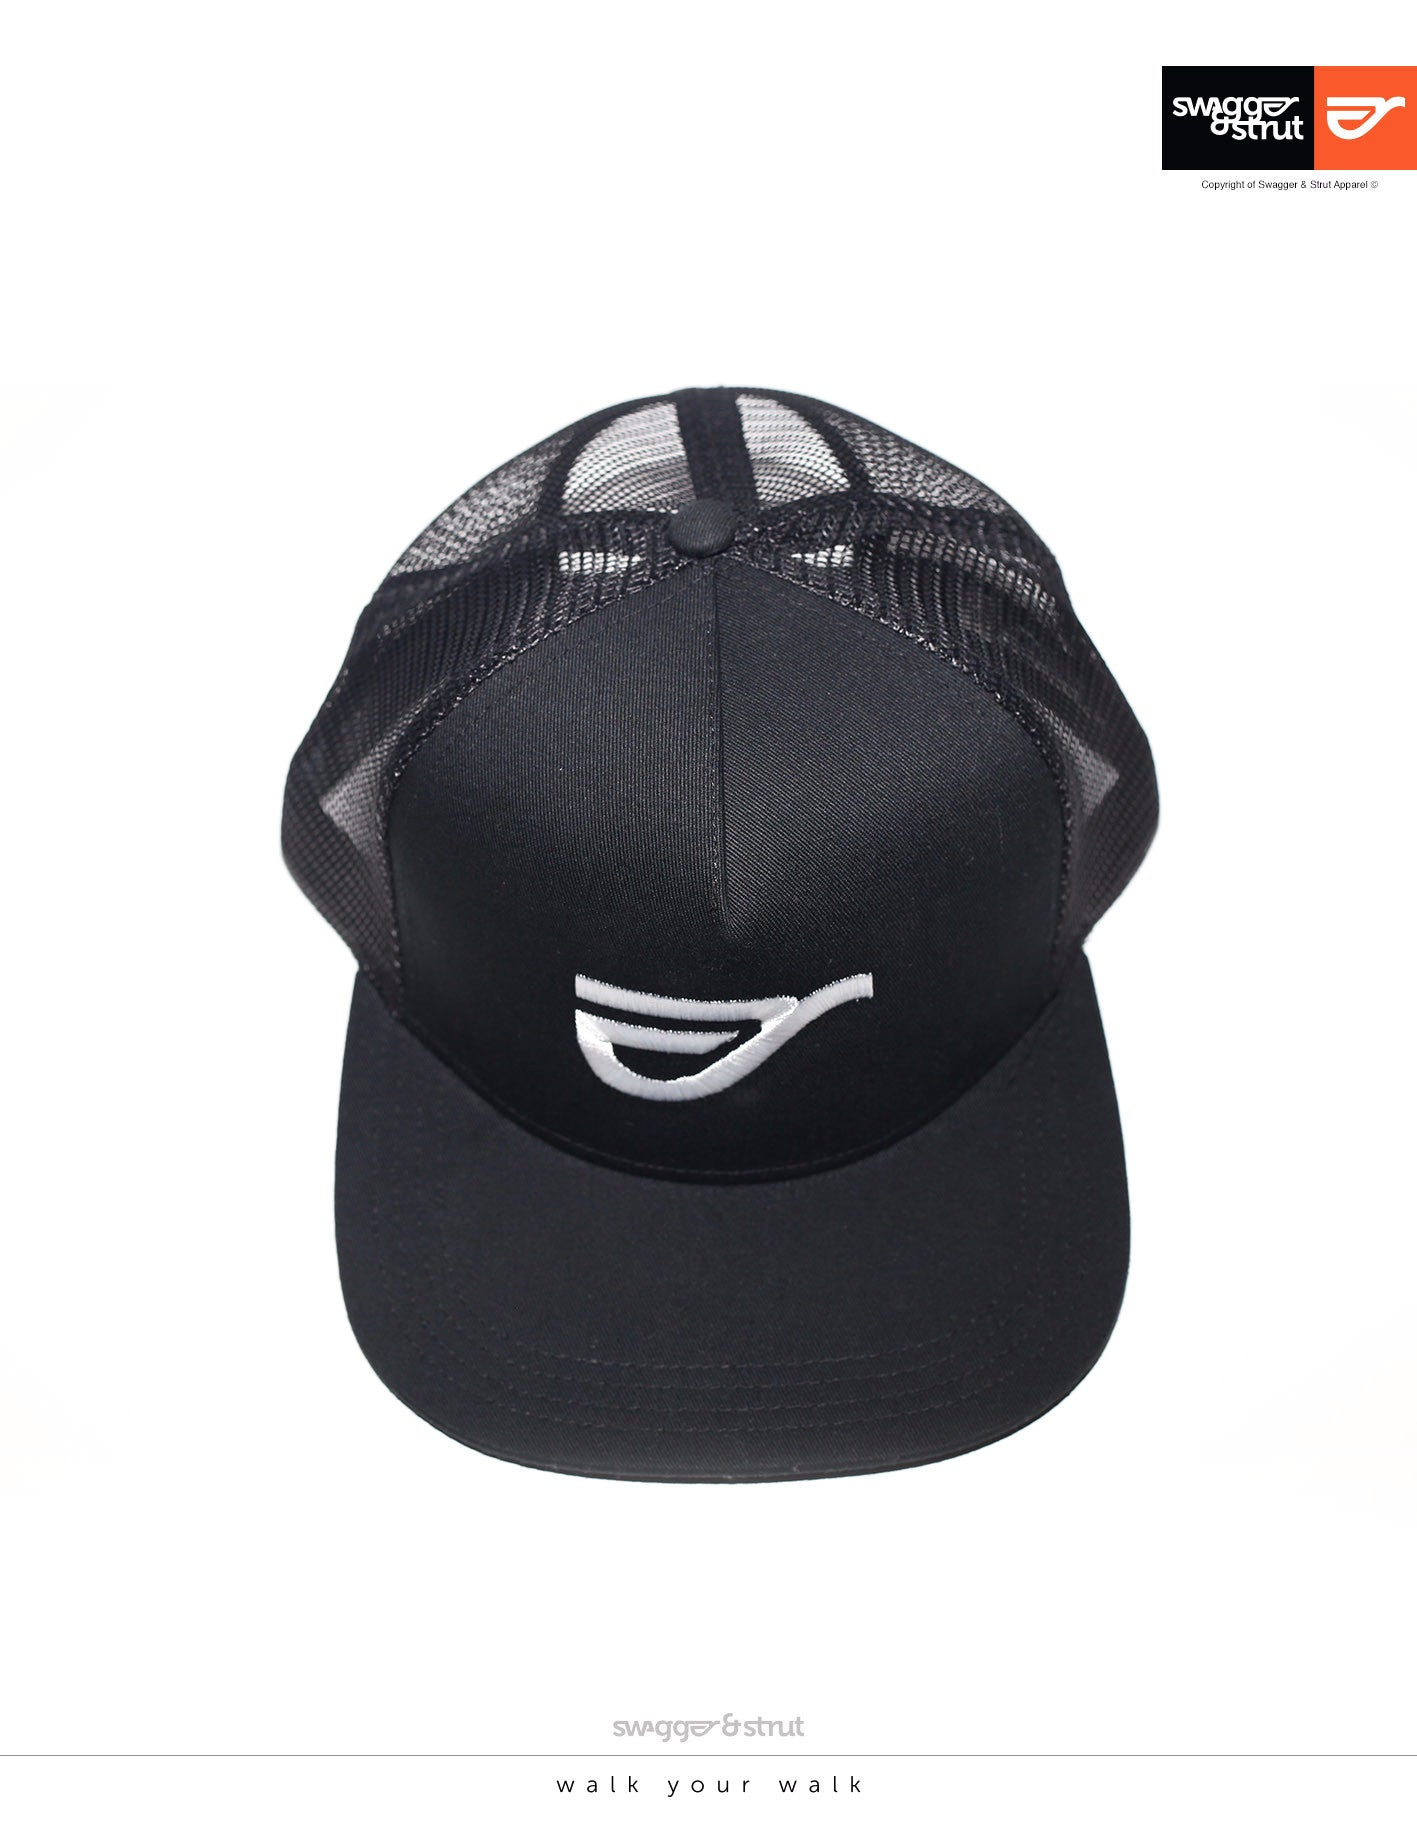 Black Trucker Cap by Swagger and Strut